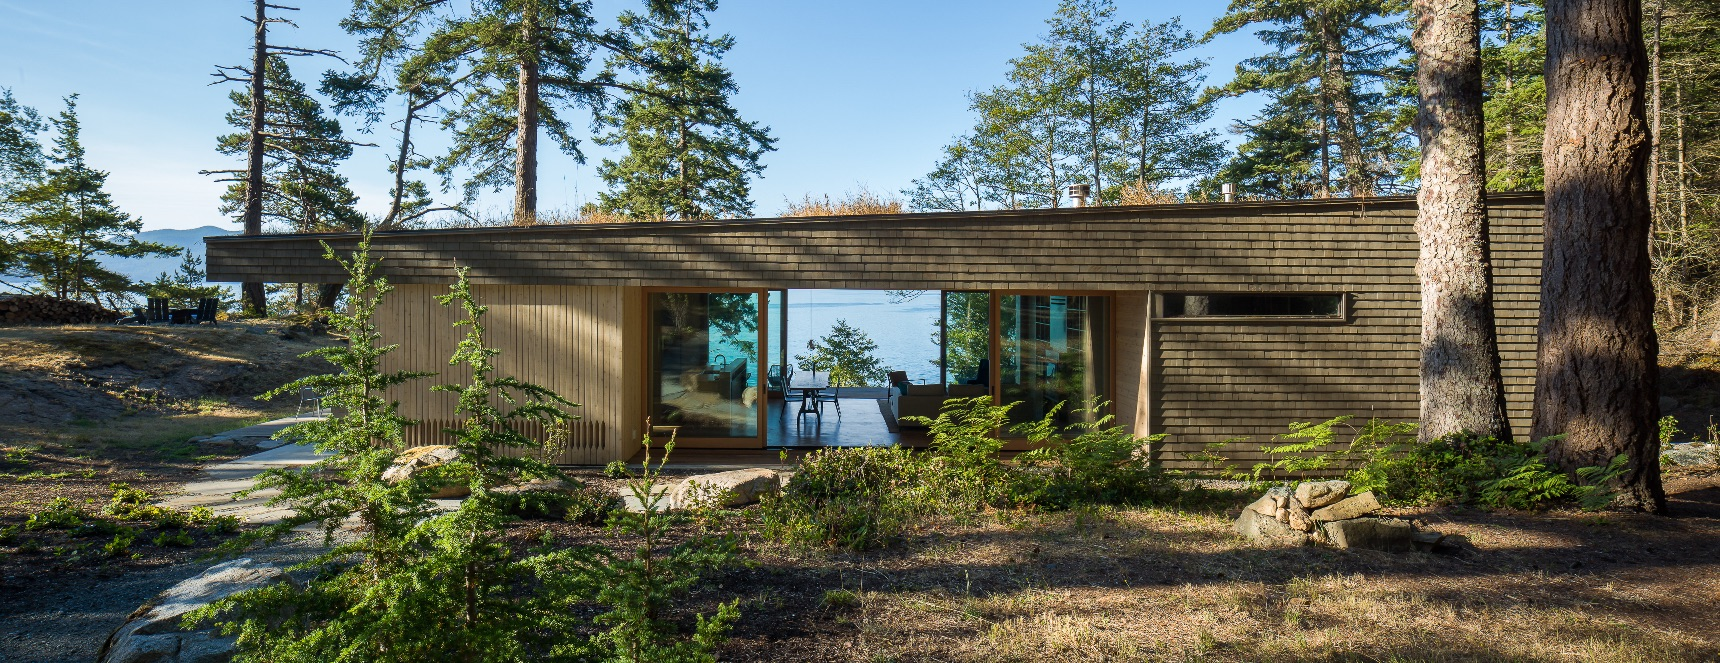 18_Lone Madrone_Heliotrope Architects_Inspirationist